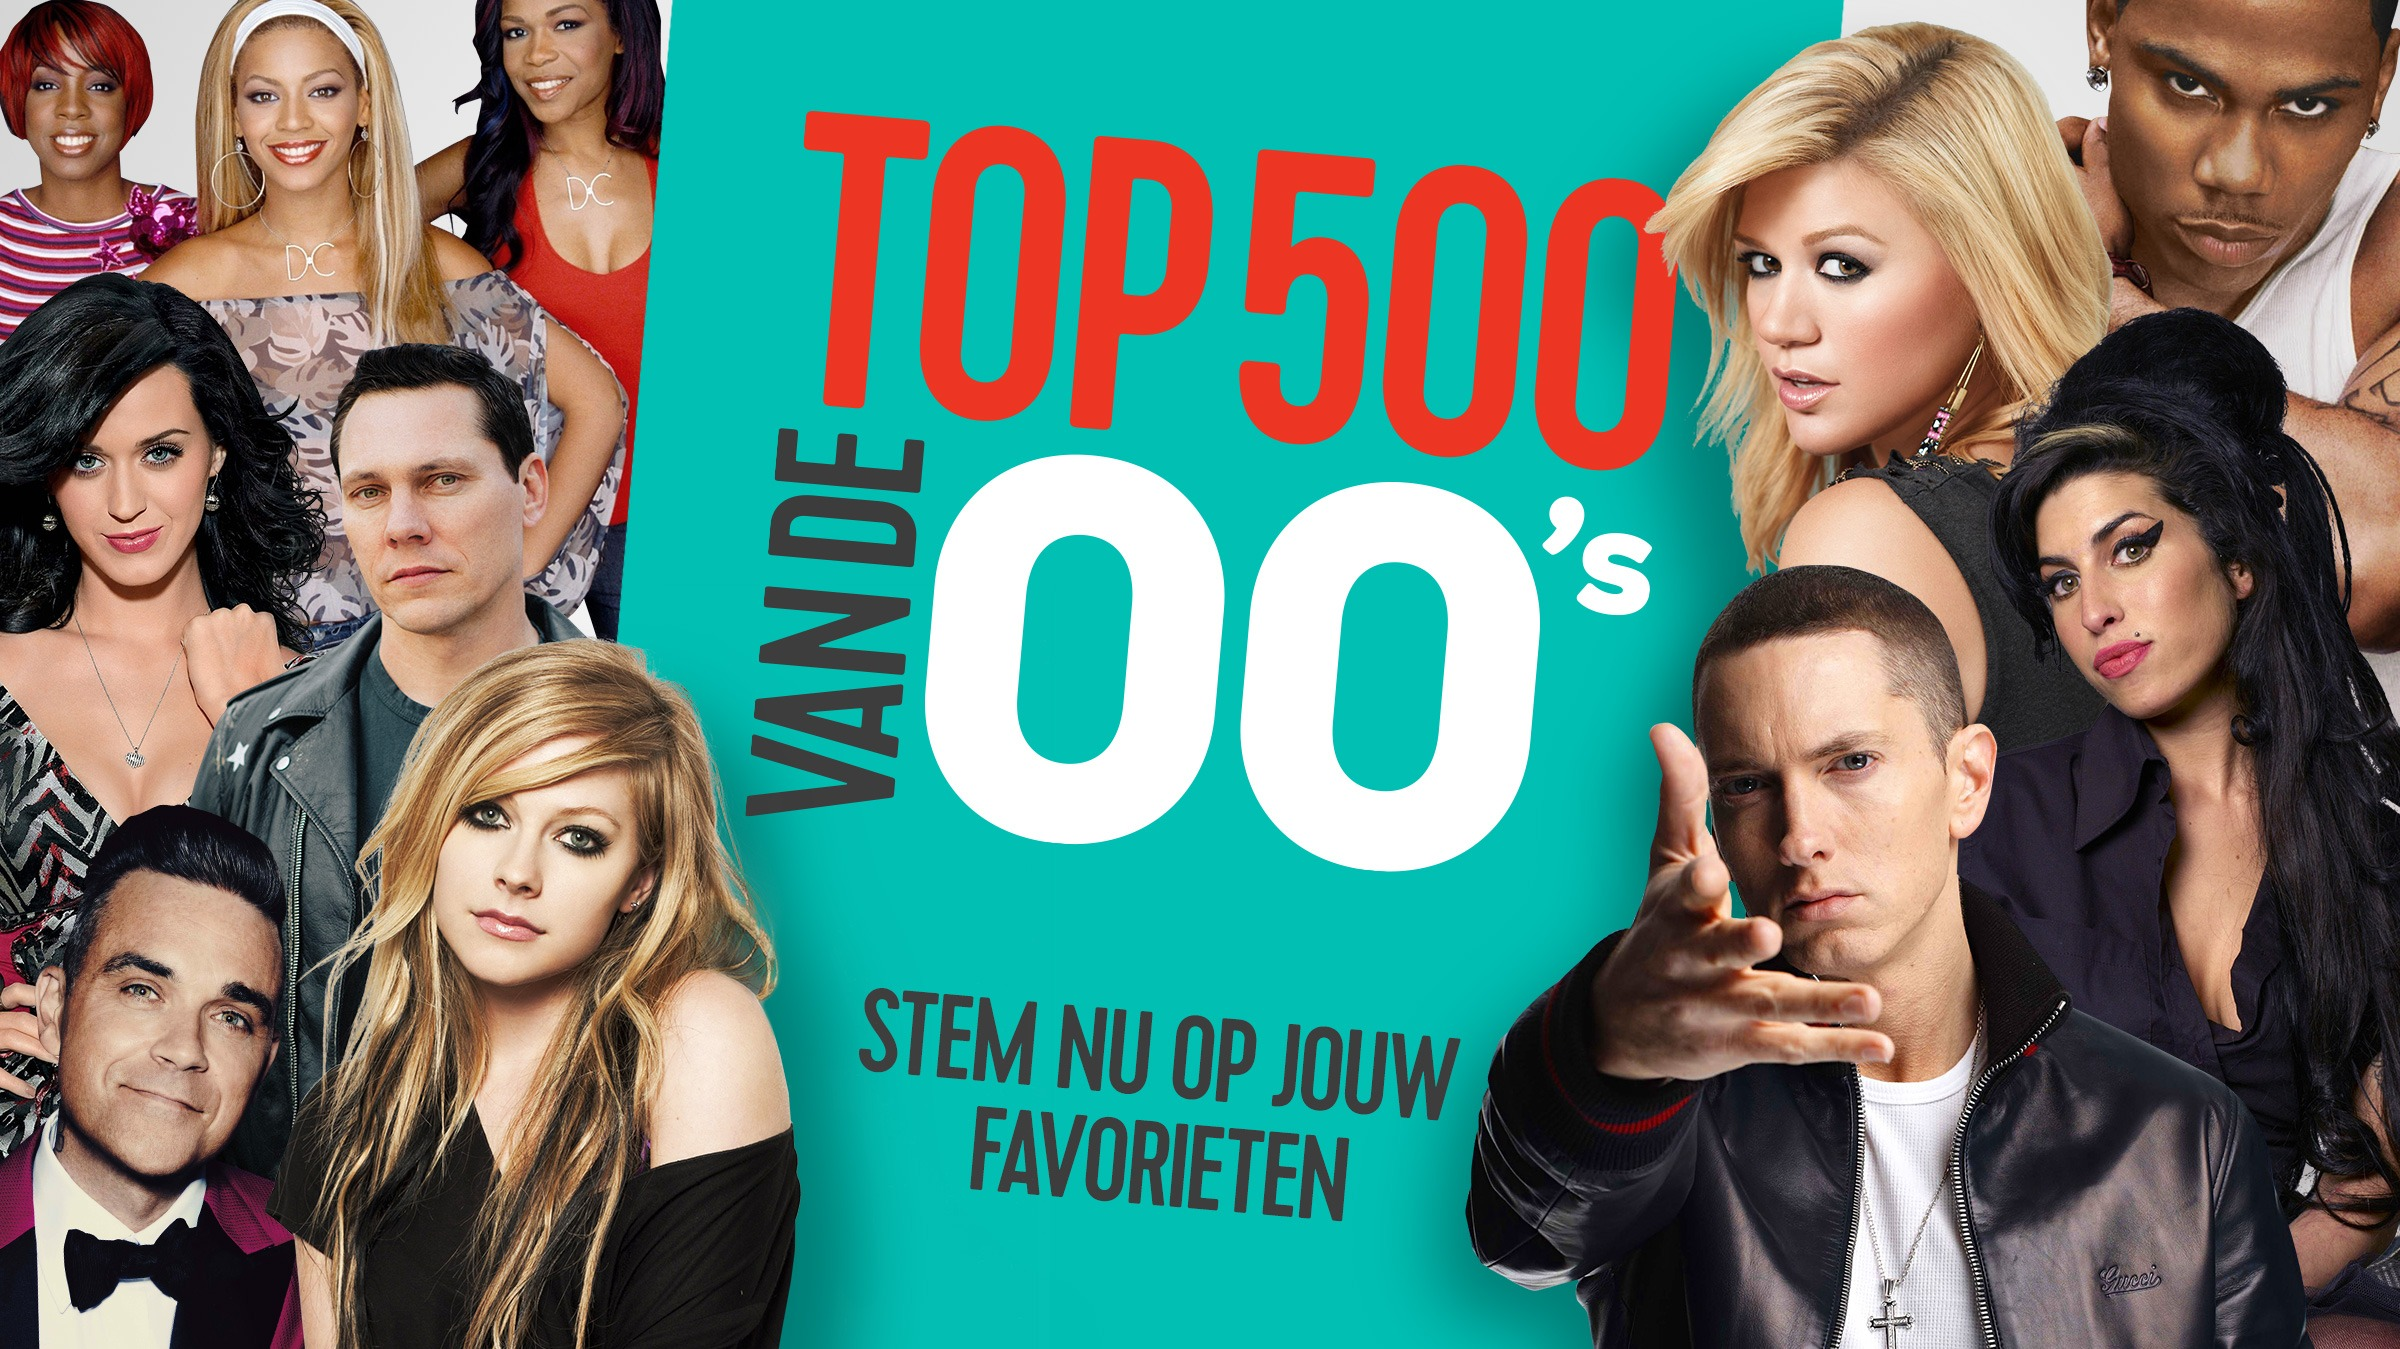 Qmusic teaser top500 00s 2017